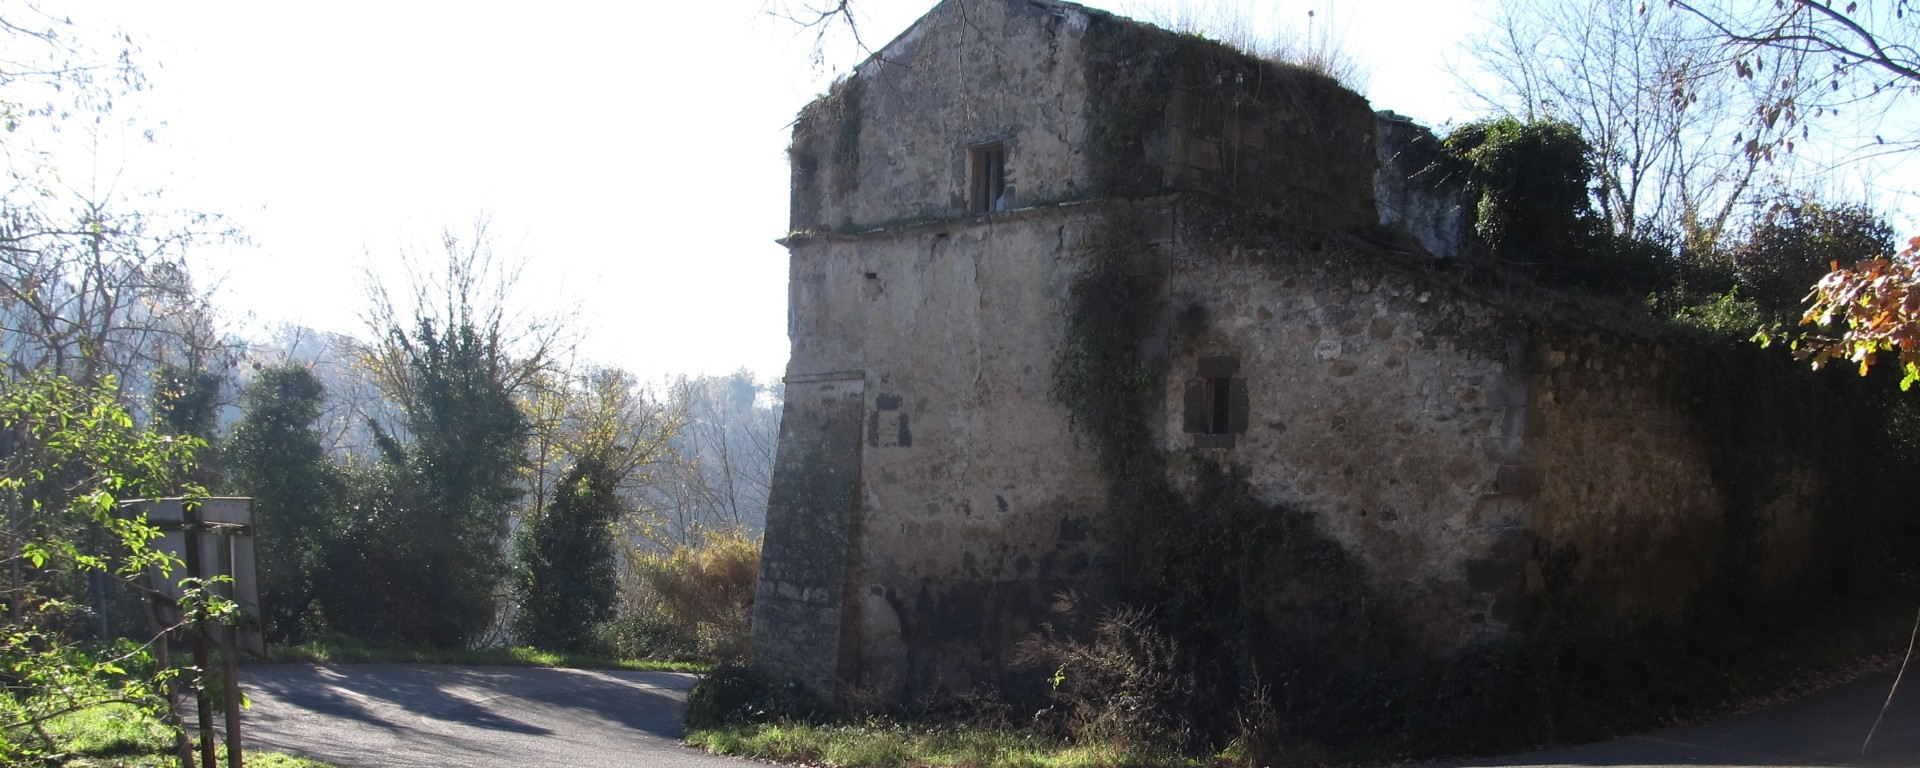 An Italian Provincial road forms a hairpin bend around an ancient and derelict farmhouse